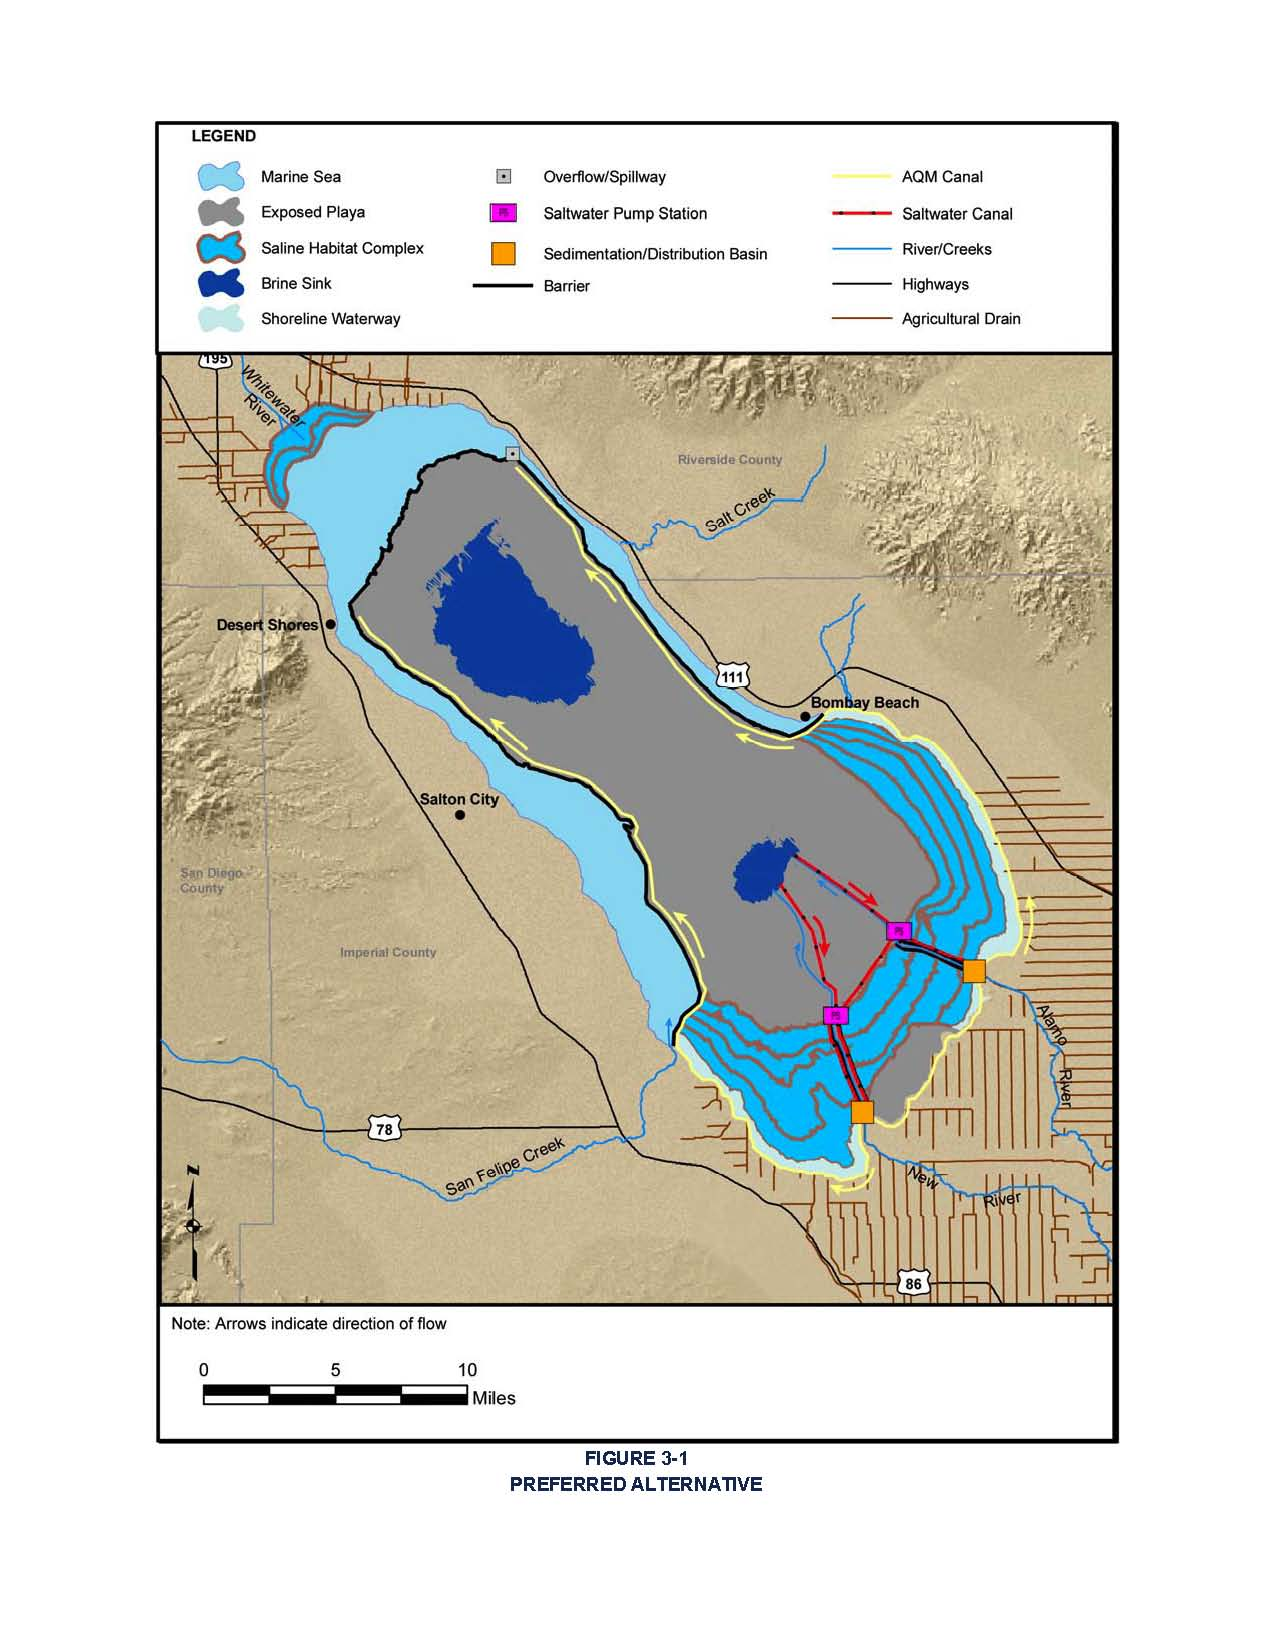 Future Looks Uncertain, Costly For Salton Sea on colorado desert, lake urmia, south carlsbad map, aral sea, sacramento map, ceram sea map, palm springs map, sage sea map, imperial valley, san vicente reservoir map, salt lake map, lake mead, gulf of california, alamo sea map, calexico map, lake berryessa map, colorado river, caspian sea, salvation mountain, caspian sea map, palm springs, dead sea, salt lake, san andreas fault map, lake superior map, lake chad, north shore, mono lake, lake van map, coachella valley, salton sink, lake pontchartrain map, lake cahuilla, trinidad state beach map, el centro ca map, great salt lake, lake tahoe map, santa catalina island map, monterey ca map,